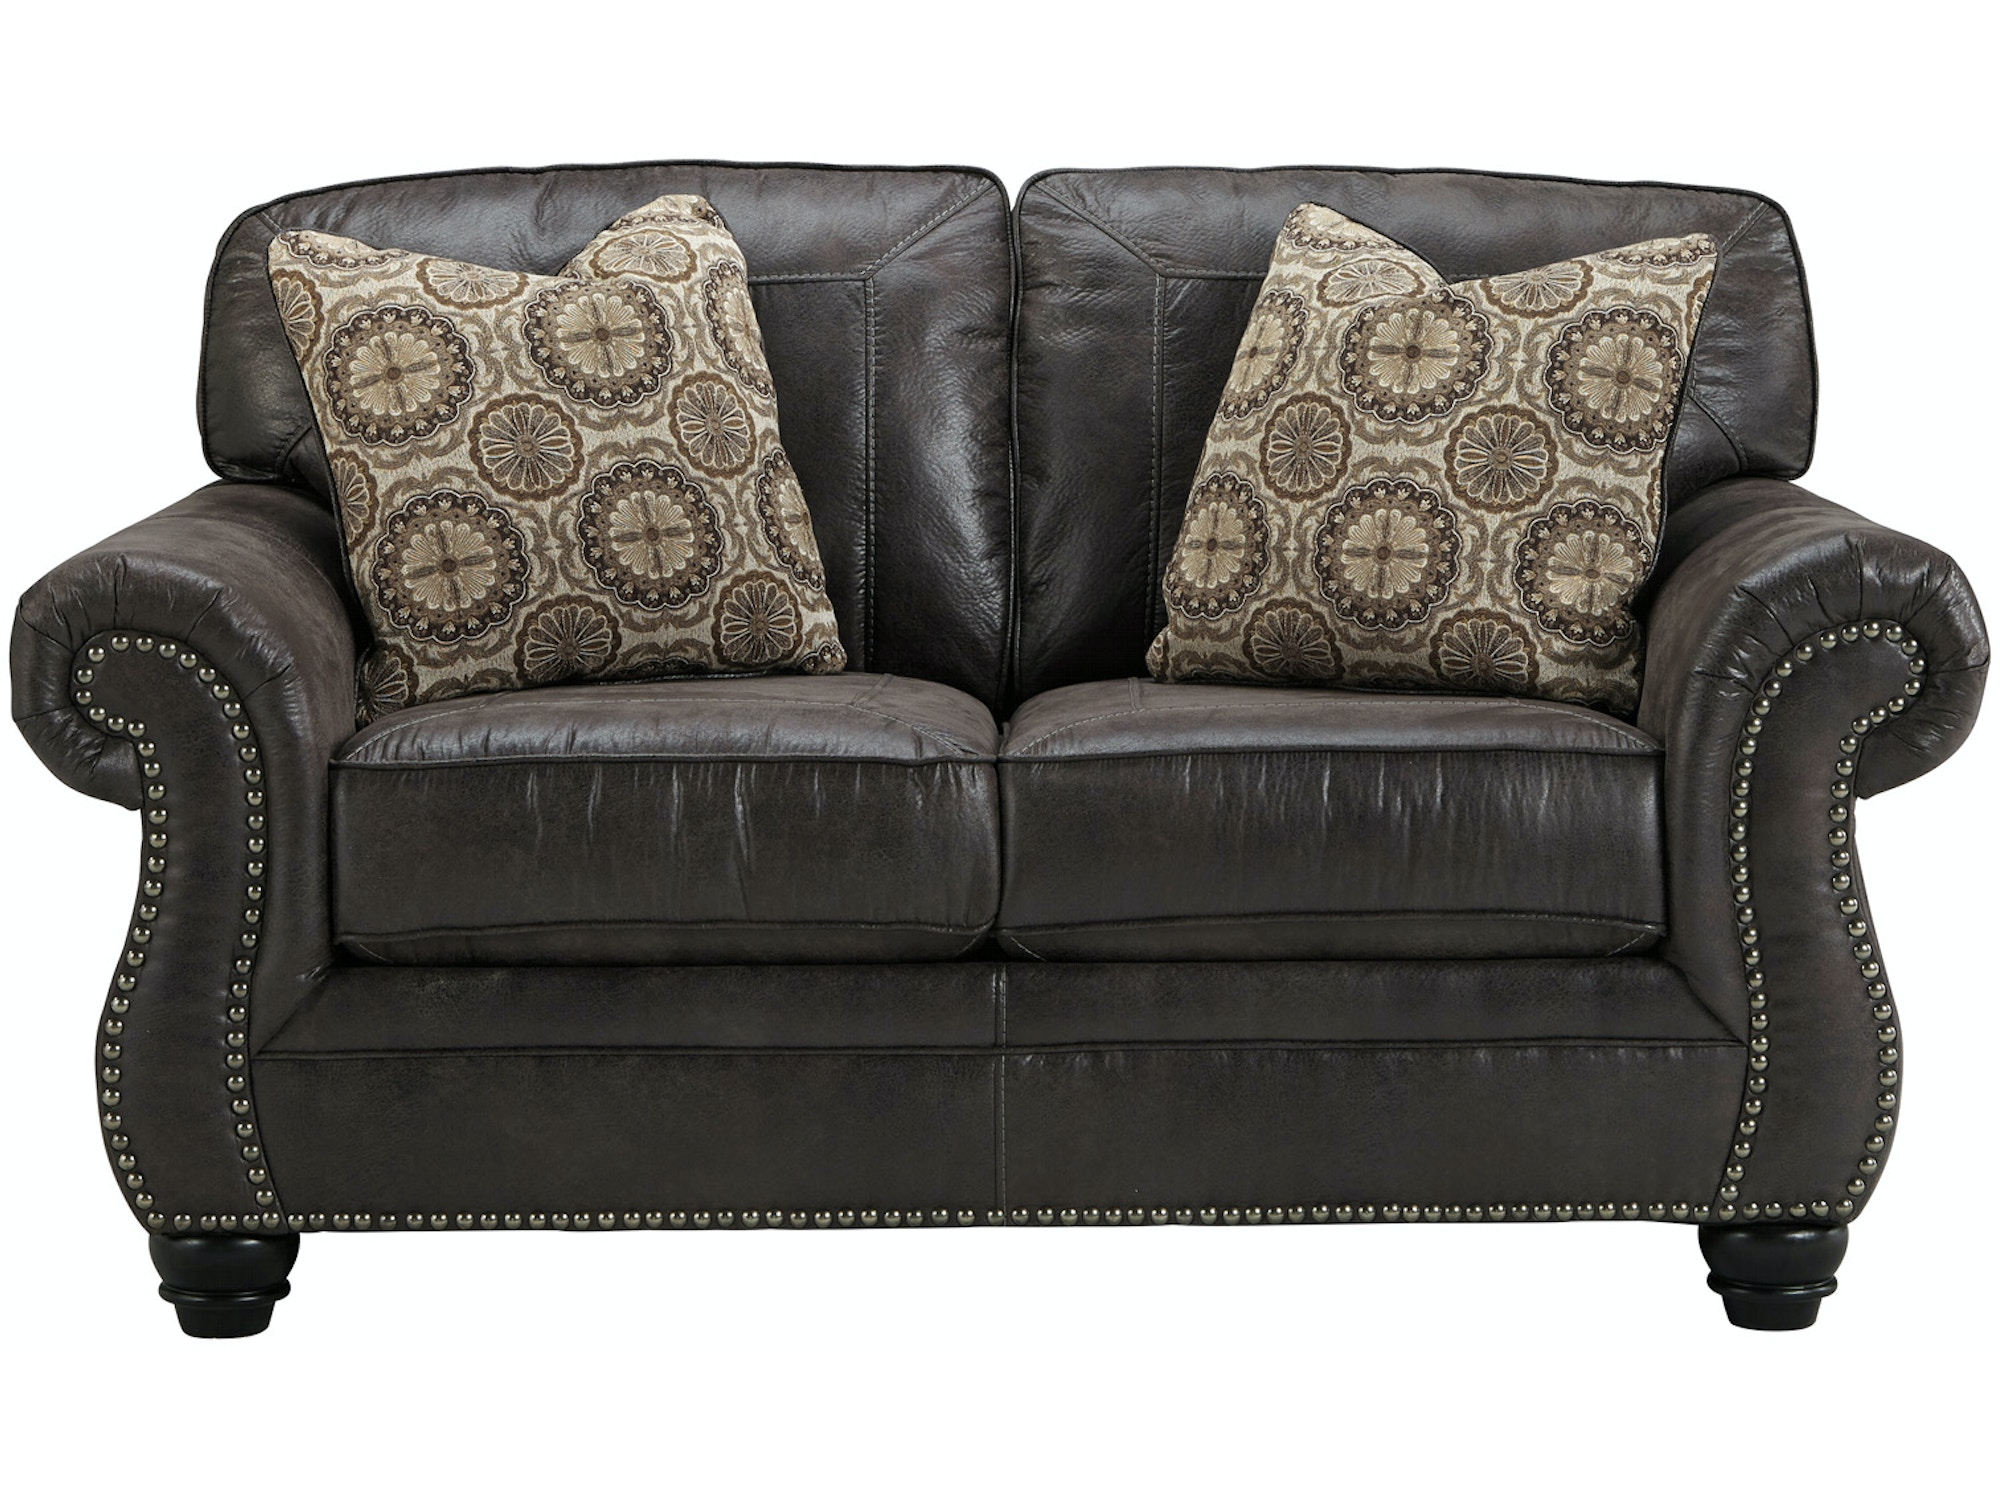 Breville Loveseat - Charcoal 046648